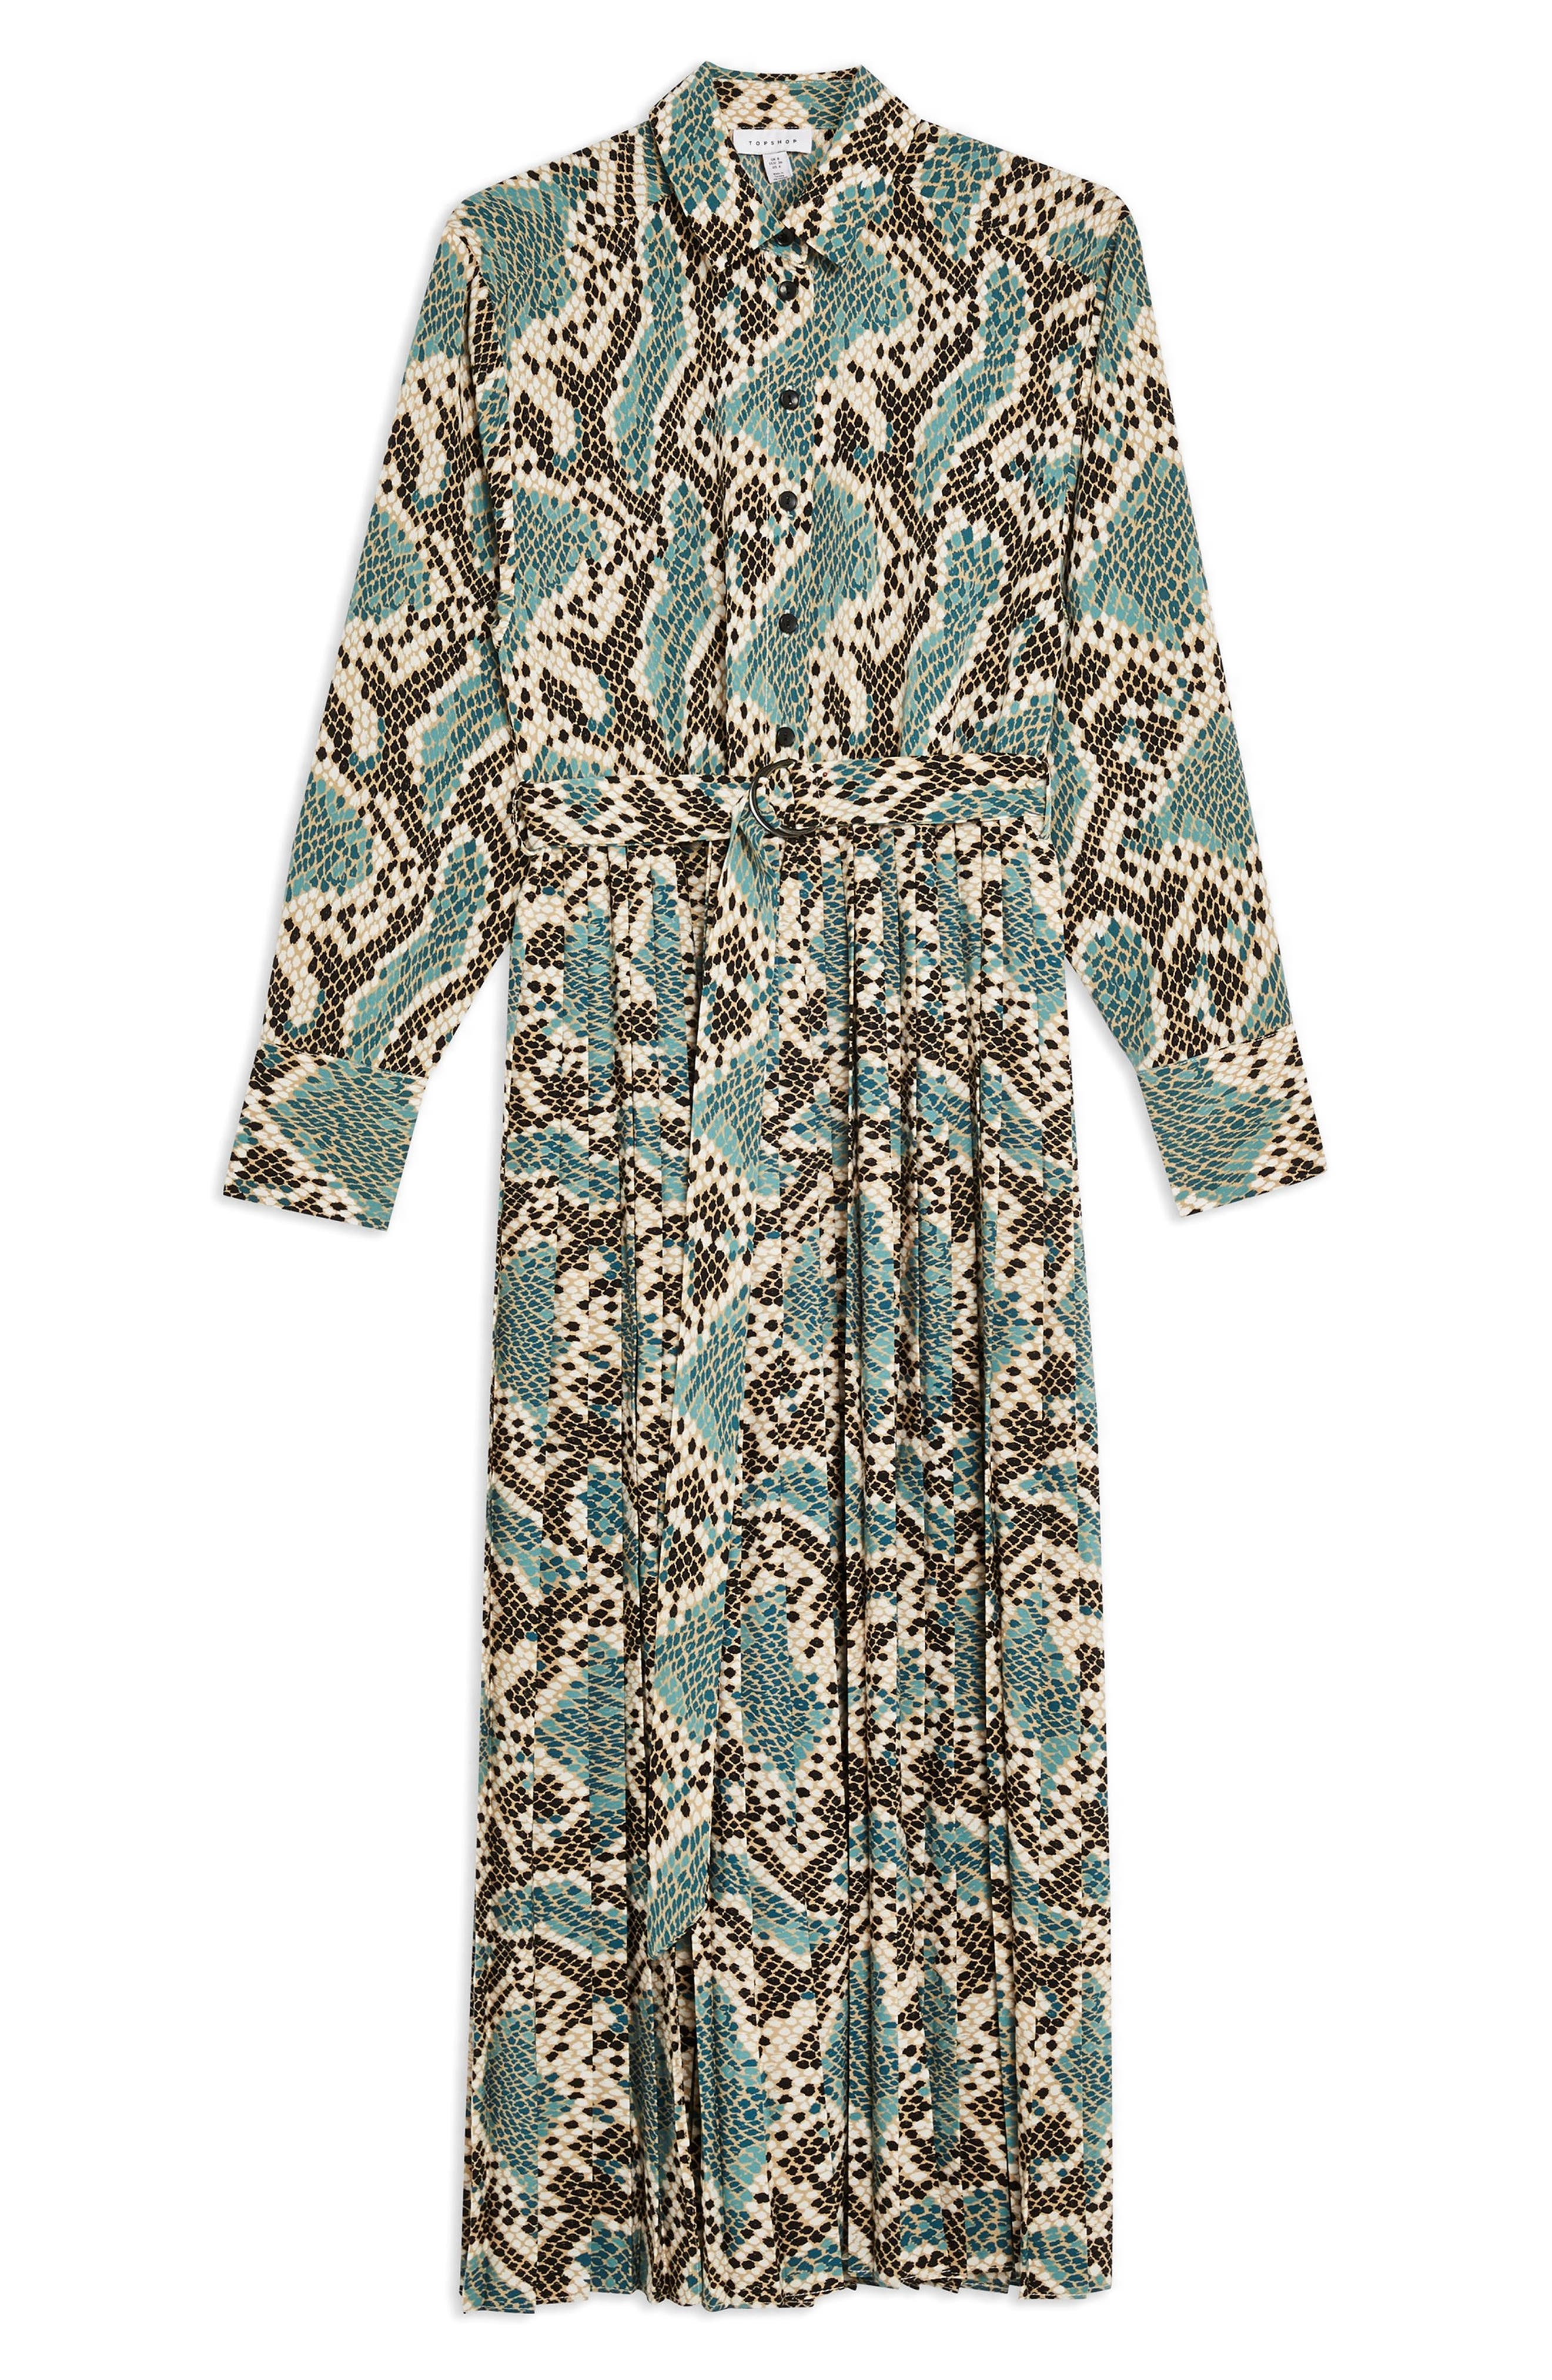 TOPSHOP, Python Pleated Shirtdress, Alternate thumbnail 4, color, BLUE MULTI